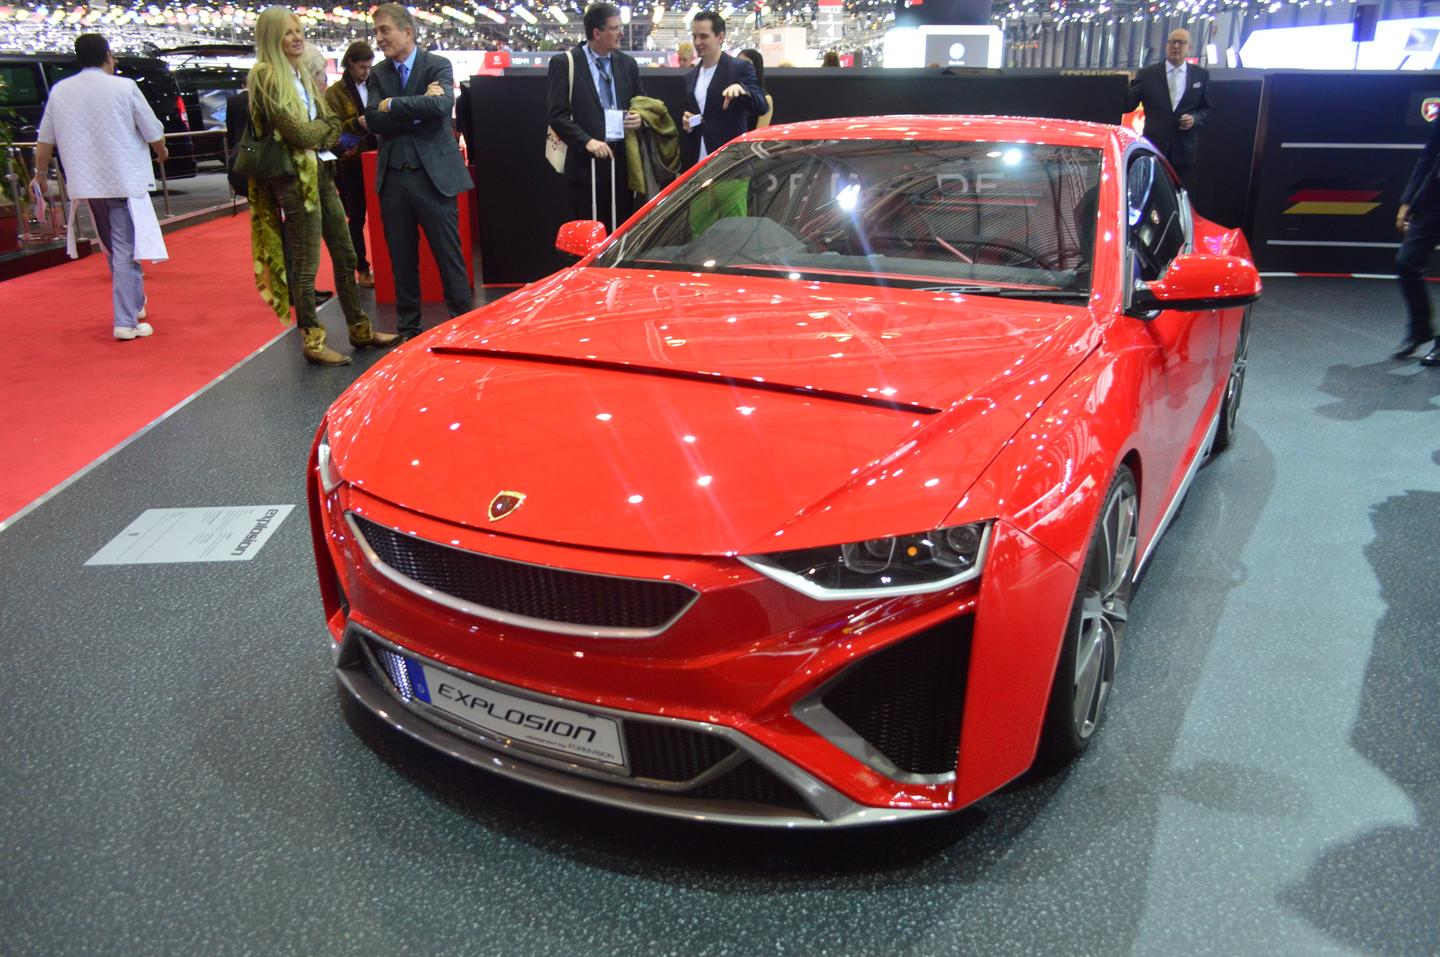 The Gumpert Explosion is powered by a 420-hp 2.0-liter engine (Photo: CC Weiss/Gizmag.com)